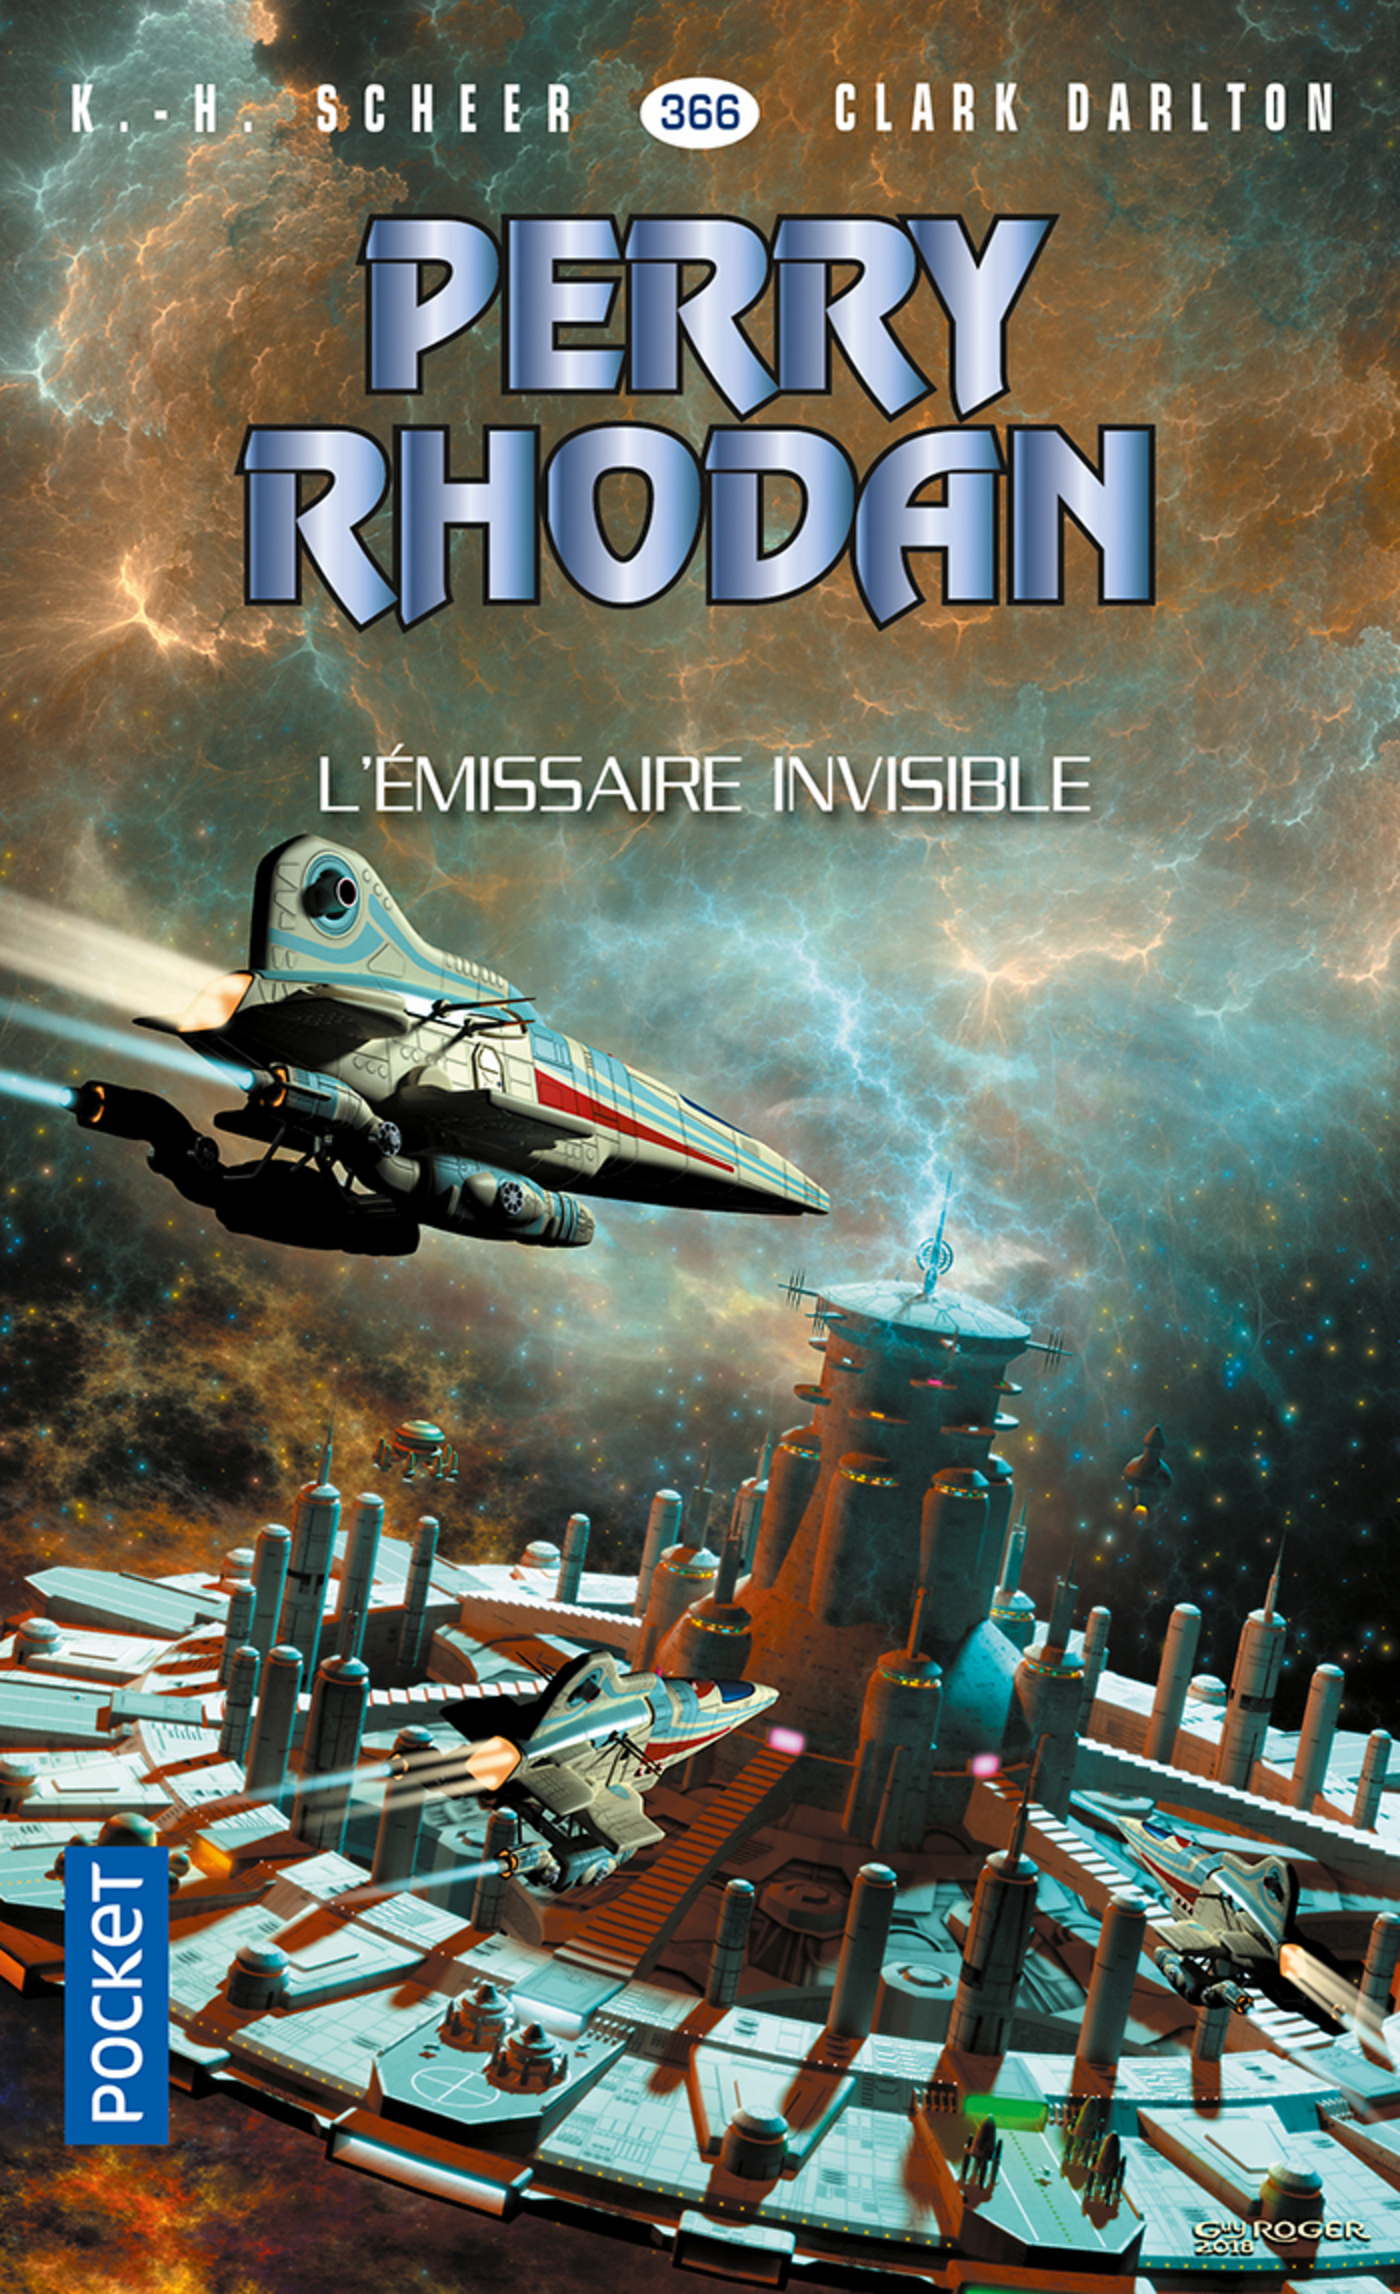 Perry Rhodan n°366 : L'émissaire invisible